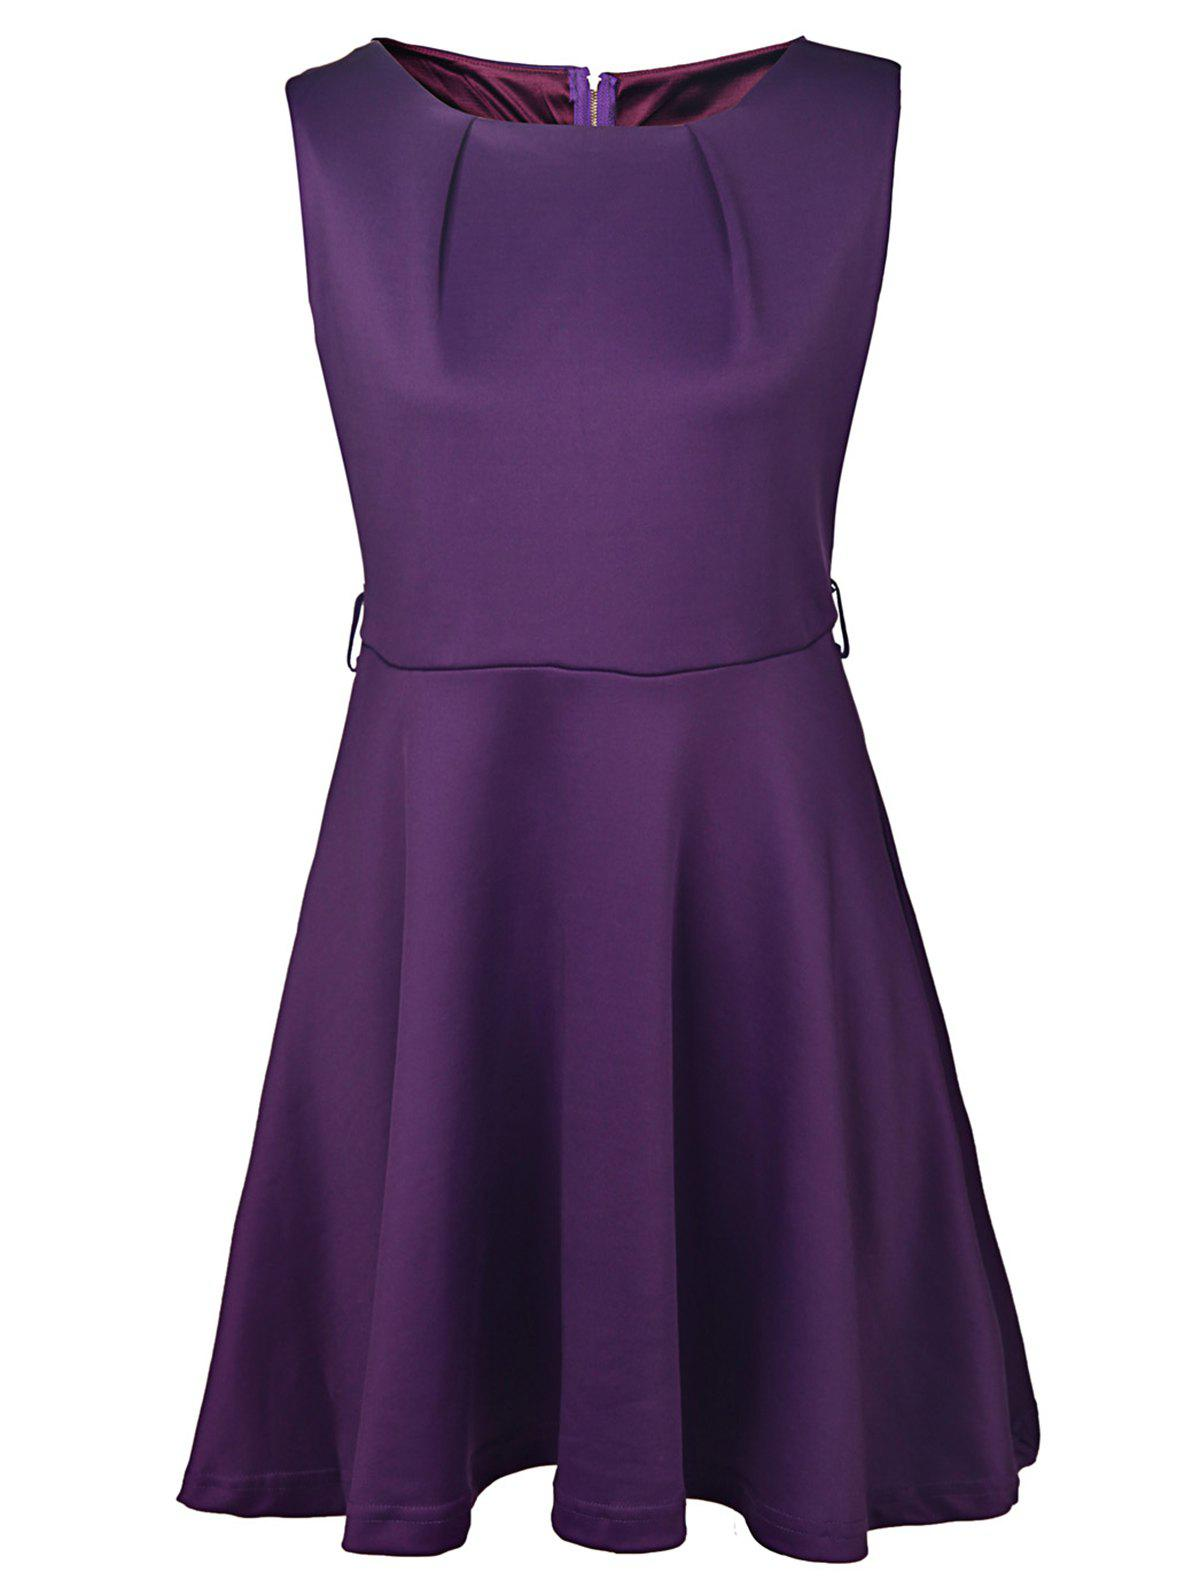 Graceful Sleeveless Round Collar Pure Color Women's Dress - PURPLE M